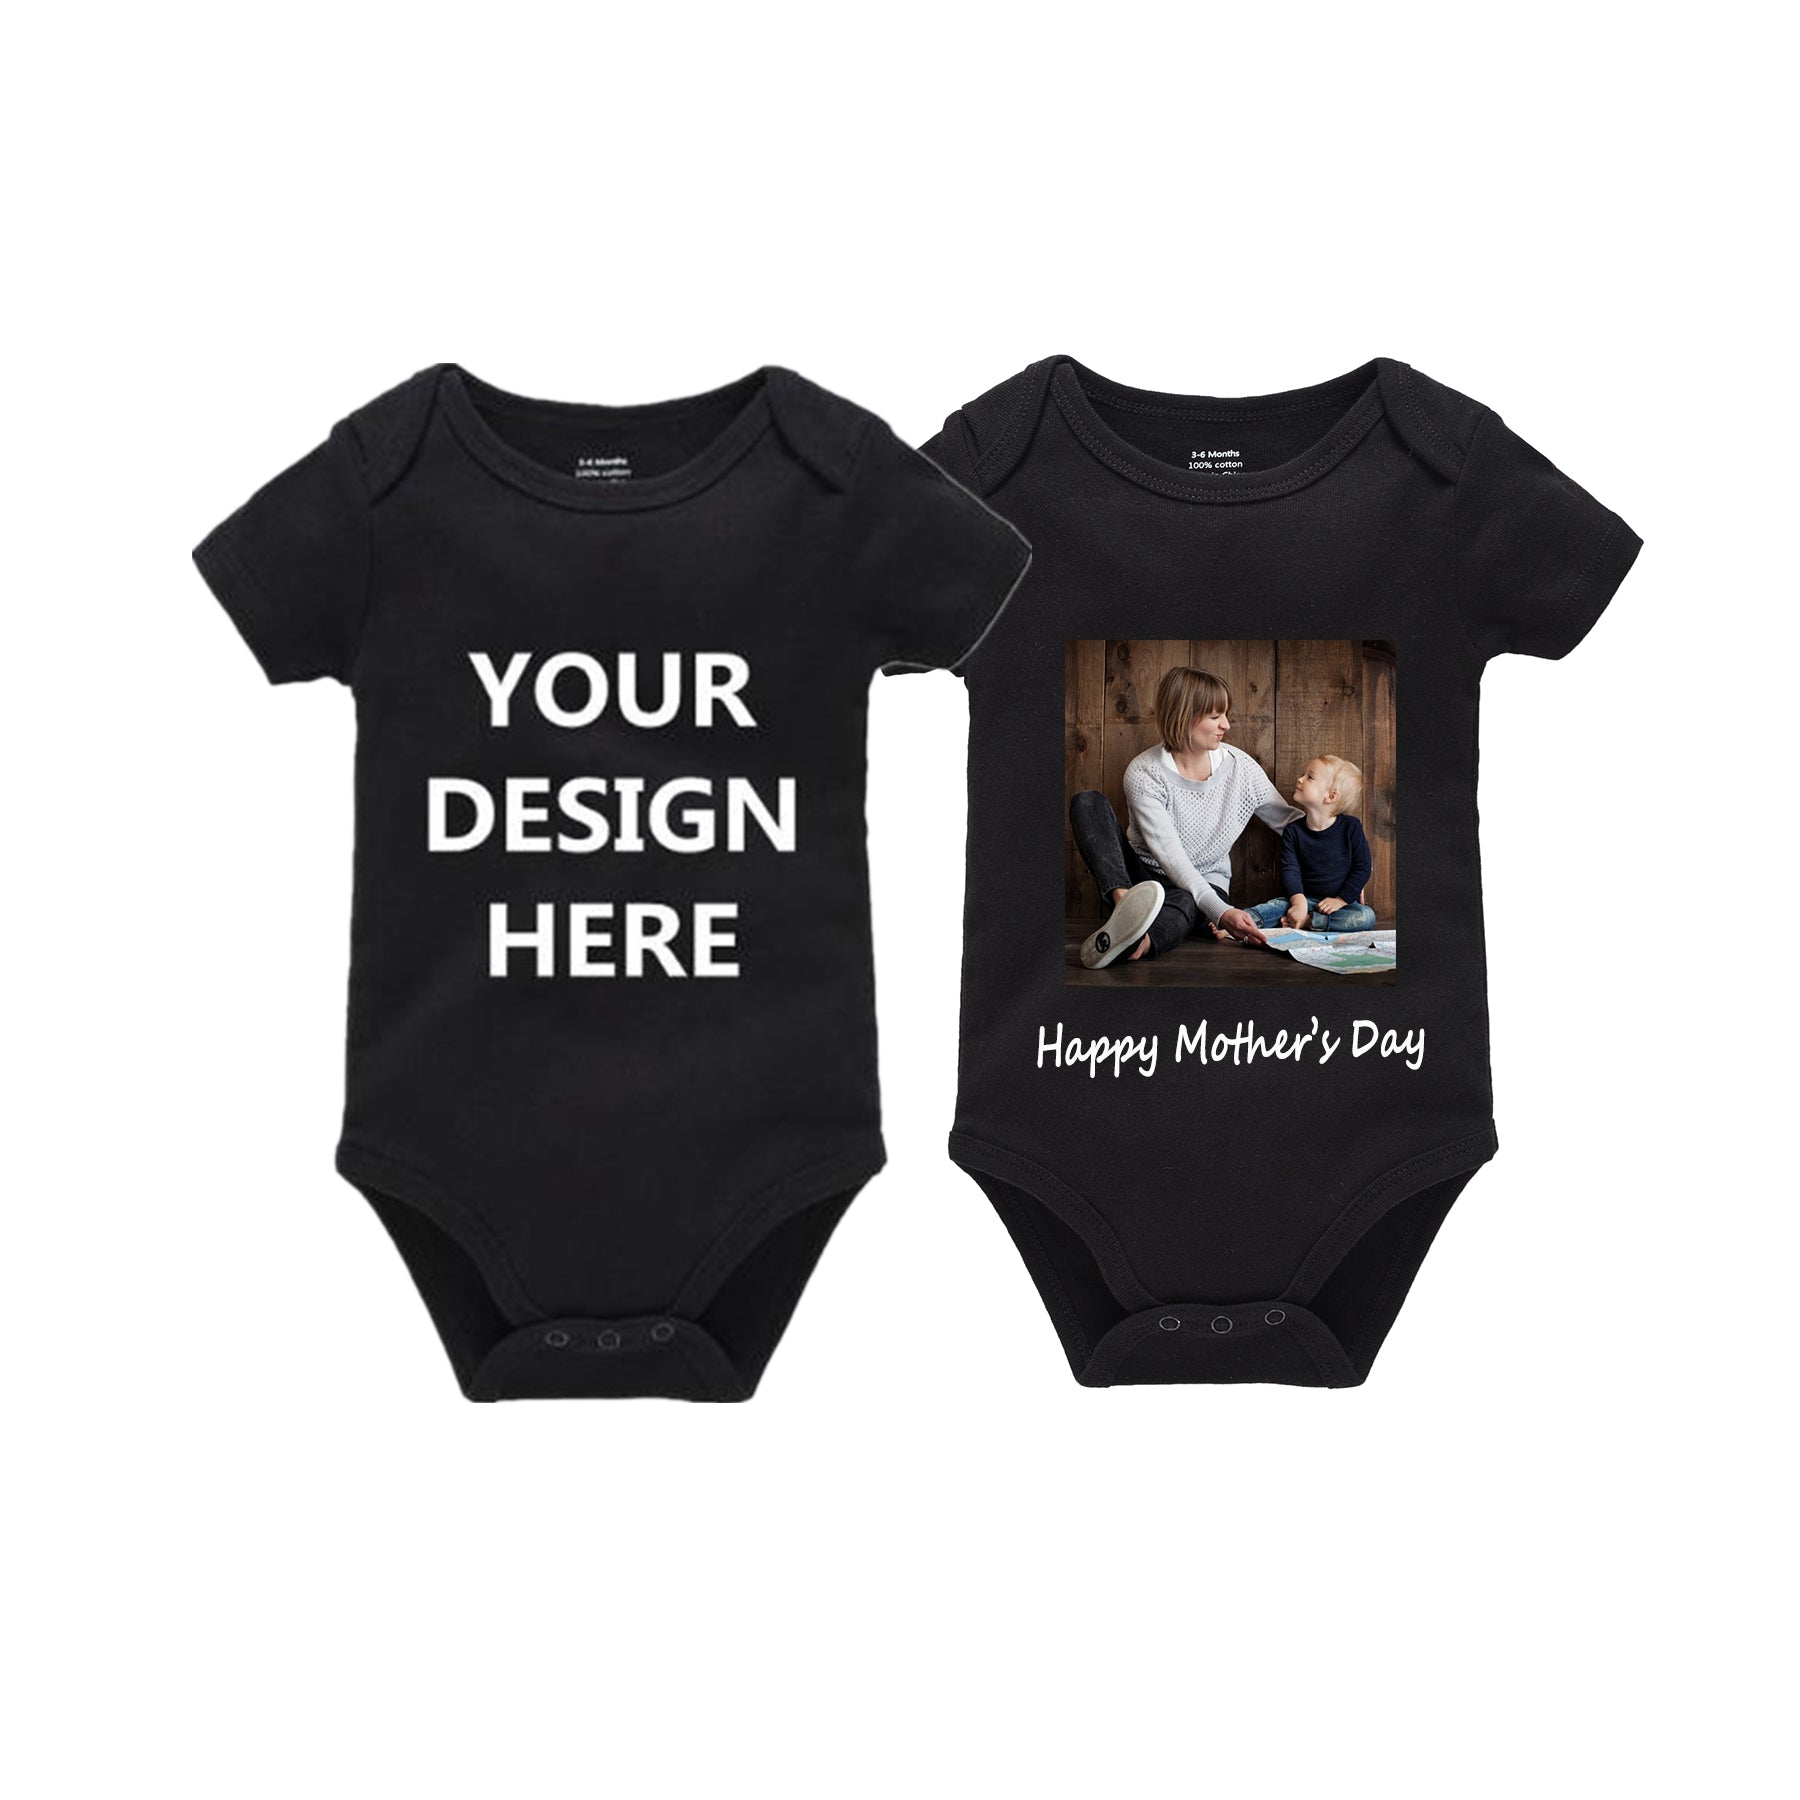 Colorful Dog Babys Boys /& Girls Short Sleeve Romper Bodysuit Outfits And T-shirt